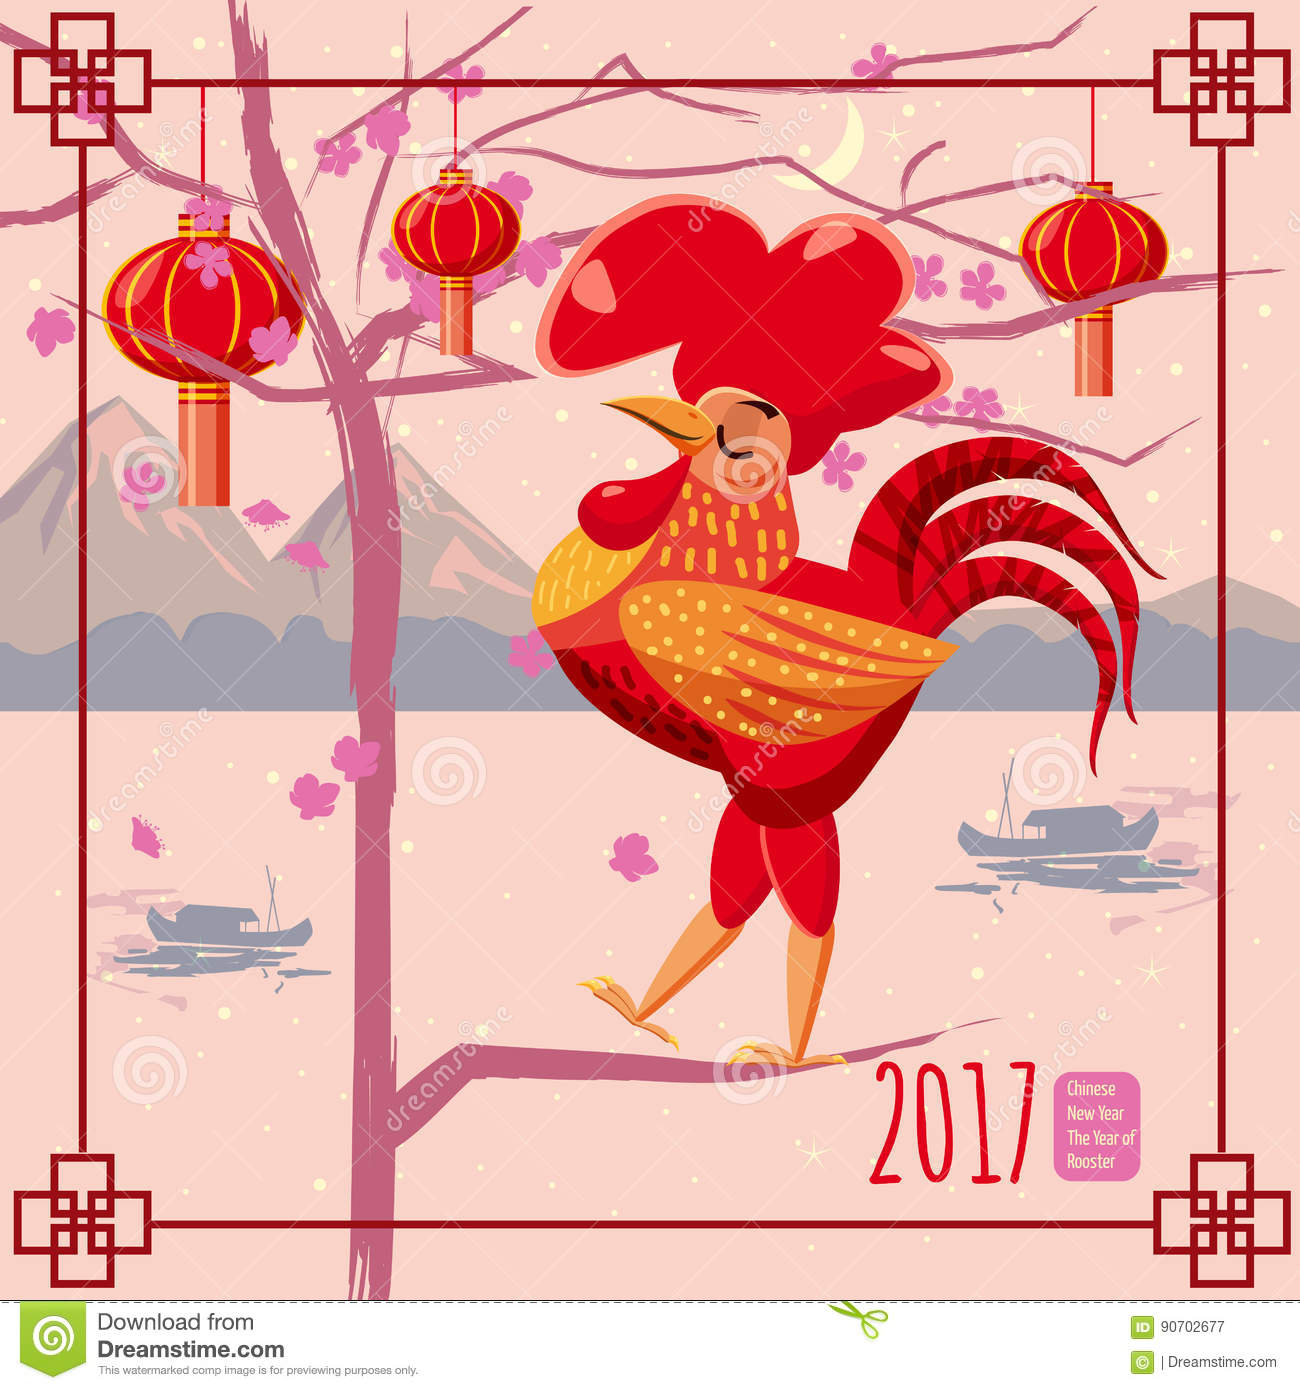 chinese new year rooster background chinese landscape mountains sea boats flowering tree lanterns cartoon style design a poster greeting card